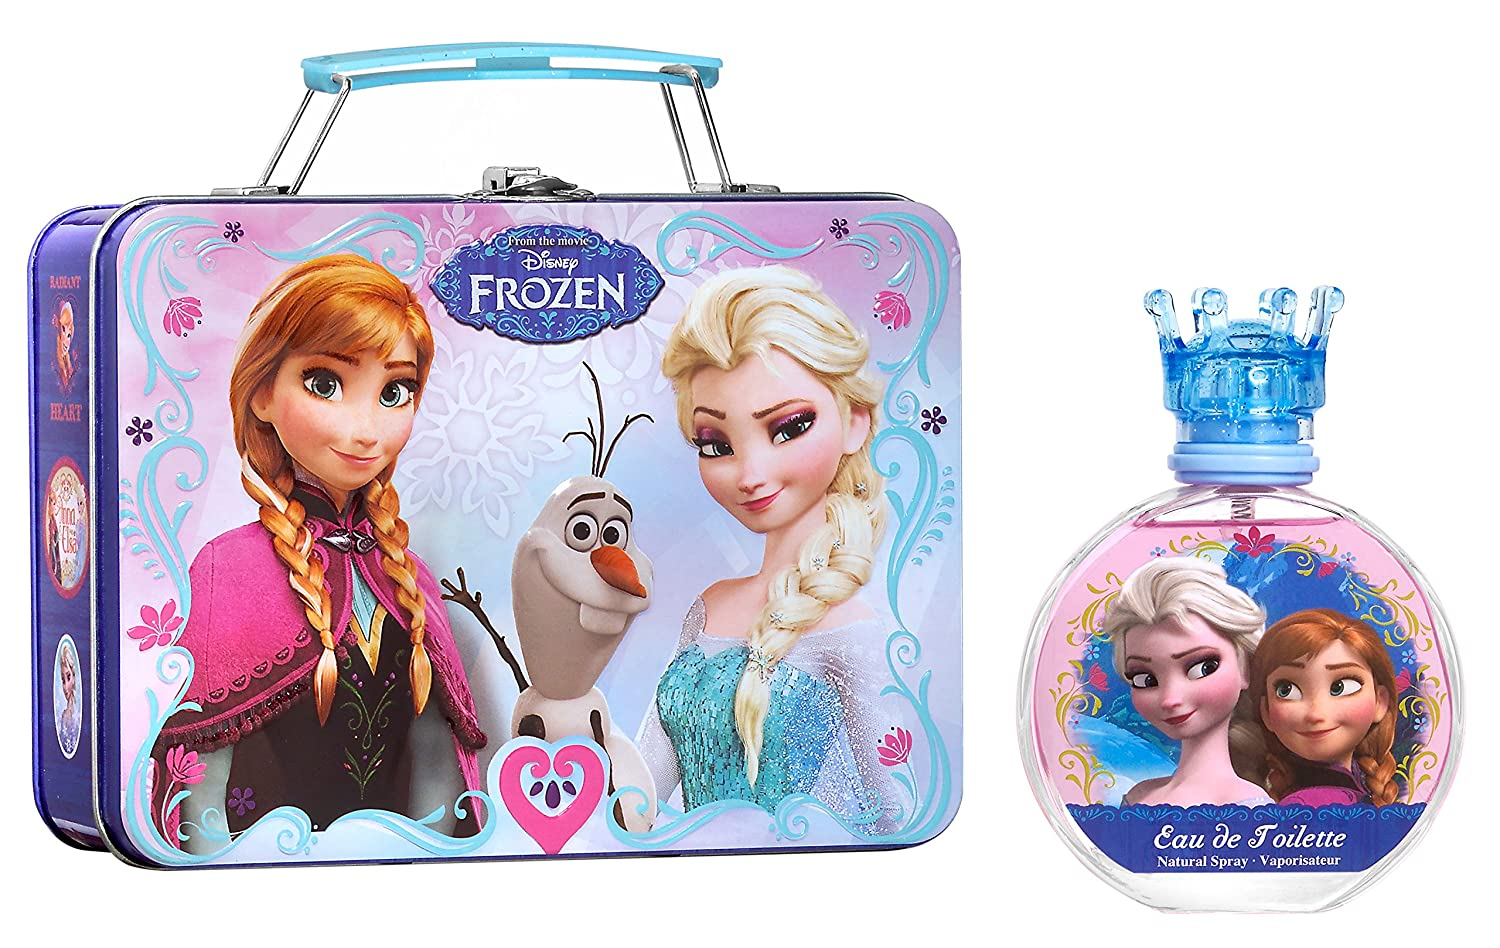 Disney Frozen 2 Piece Gift Set with Edt Spray and Metallic Lunch Box for Kids P6339